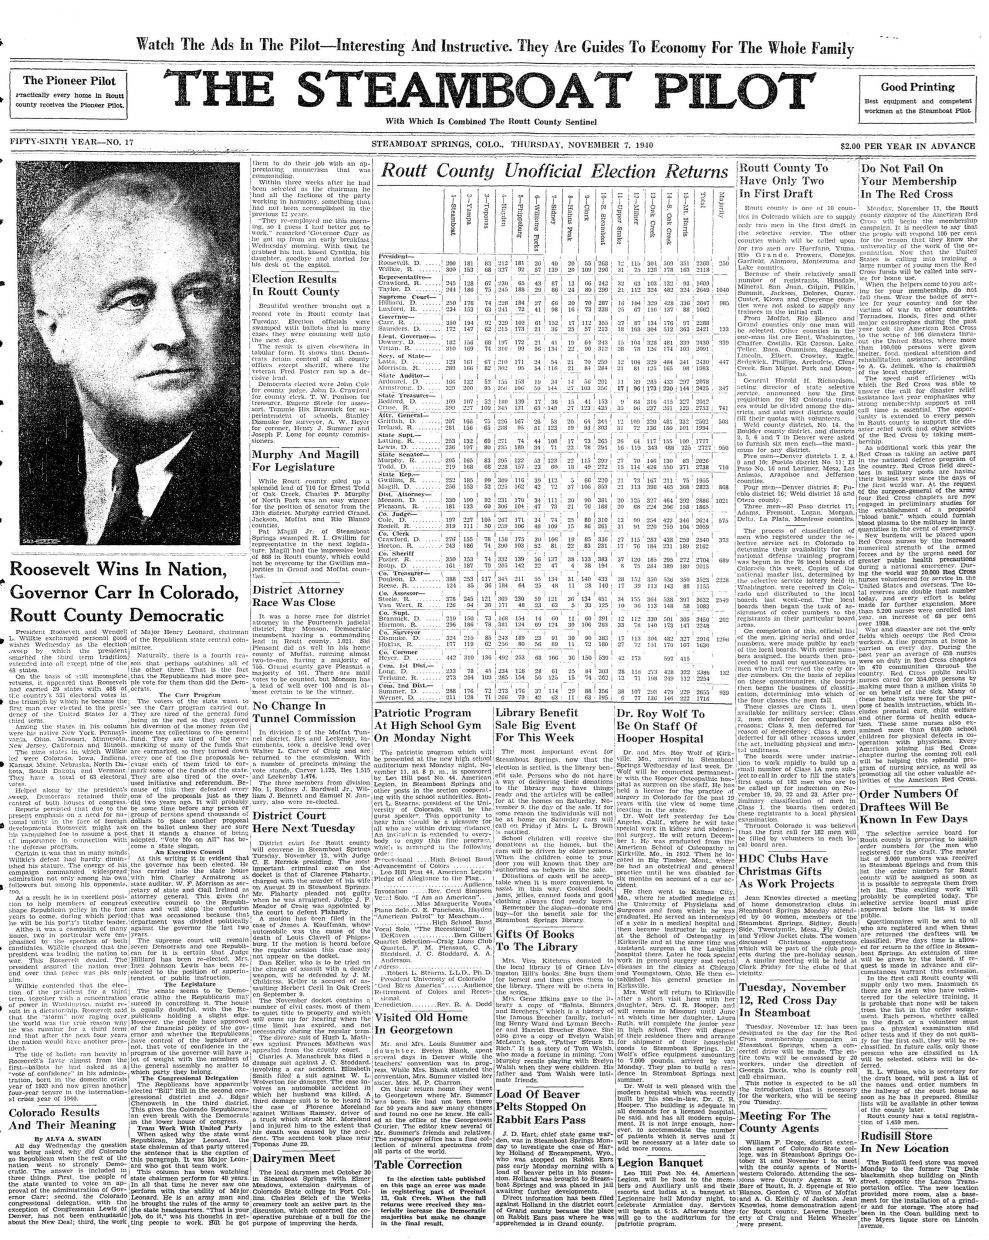 Front page of 1940 Steamboat Pilot